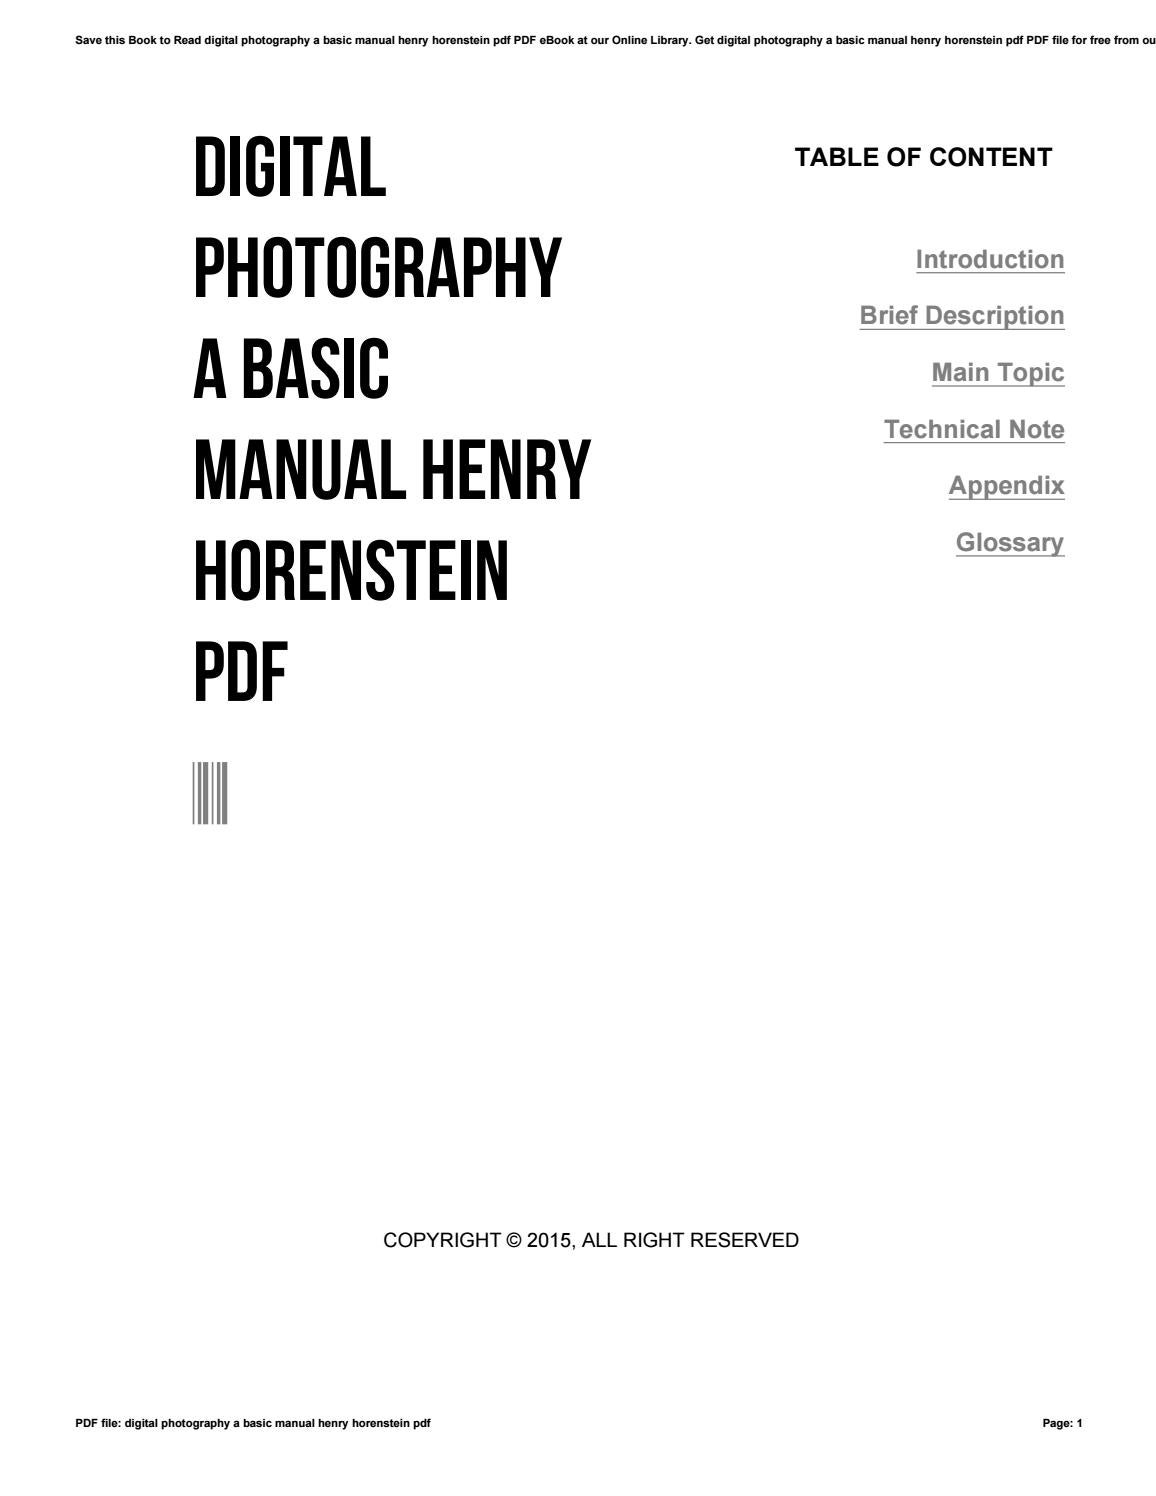 Digital photography a basic manual henry horenstein pdf by